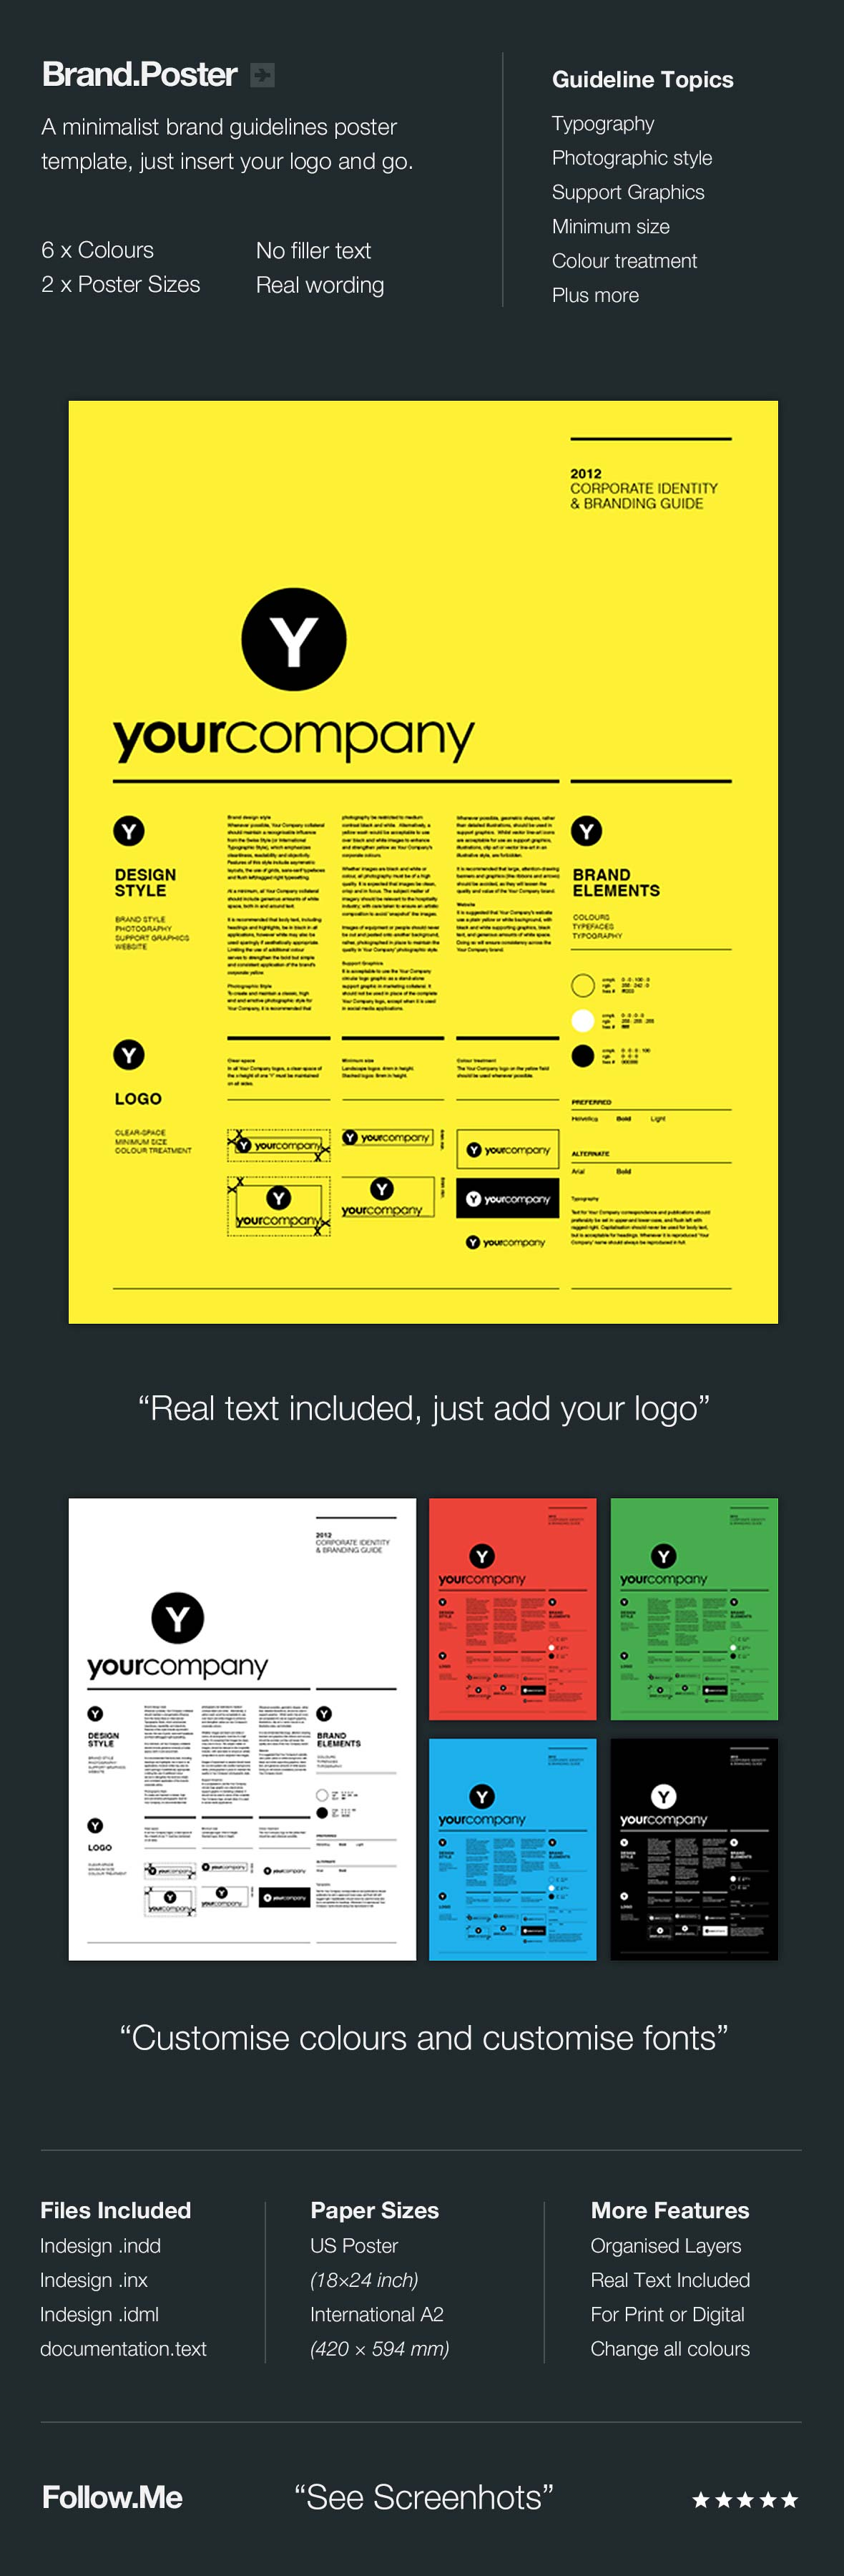 Poster design guidelines - A Minimalist Brand Guidelines Poster Template No Filler Text Comes With Real Wording So